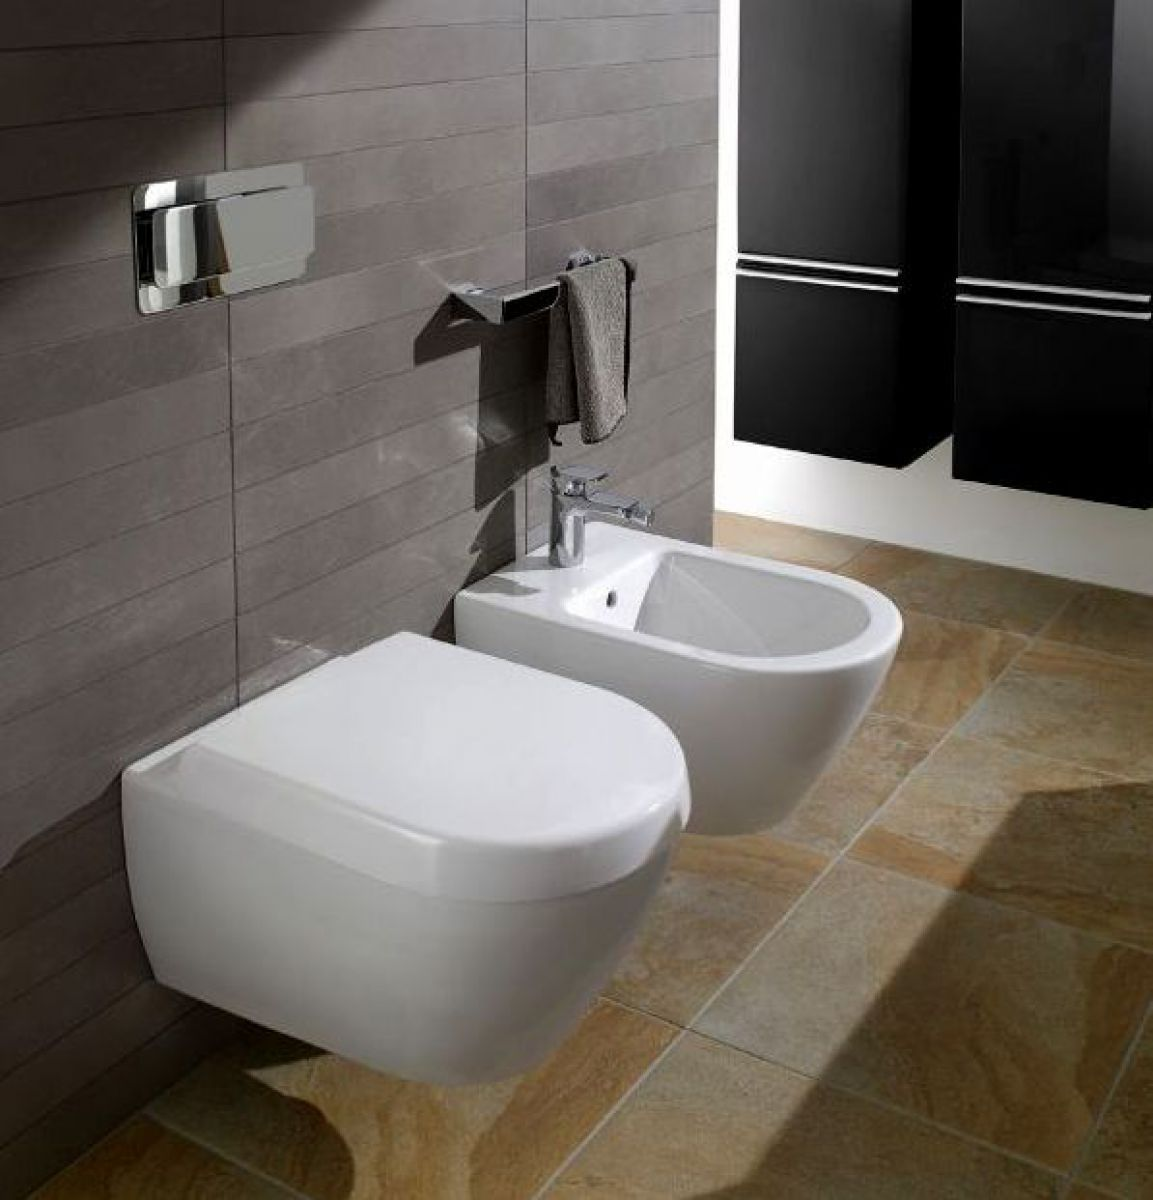 villeroy boch soho wall mounted toilet uk bathrooms. Black Bedroom Furniture Sets. Home Design Ideas